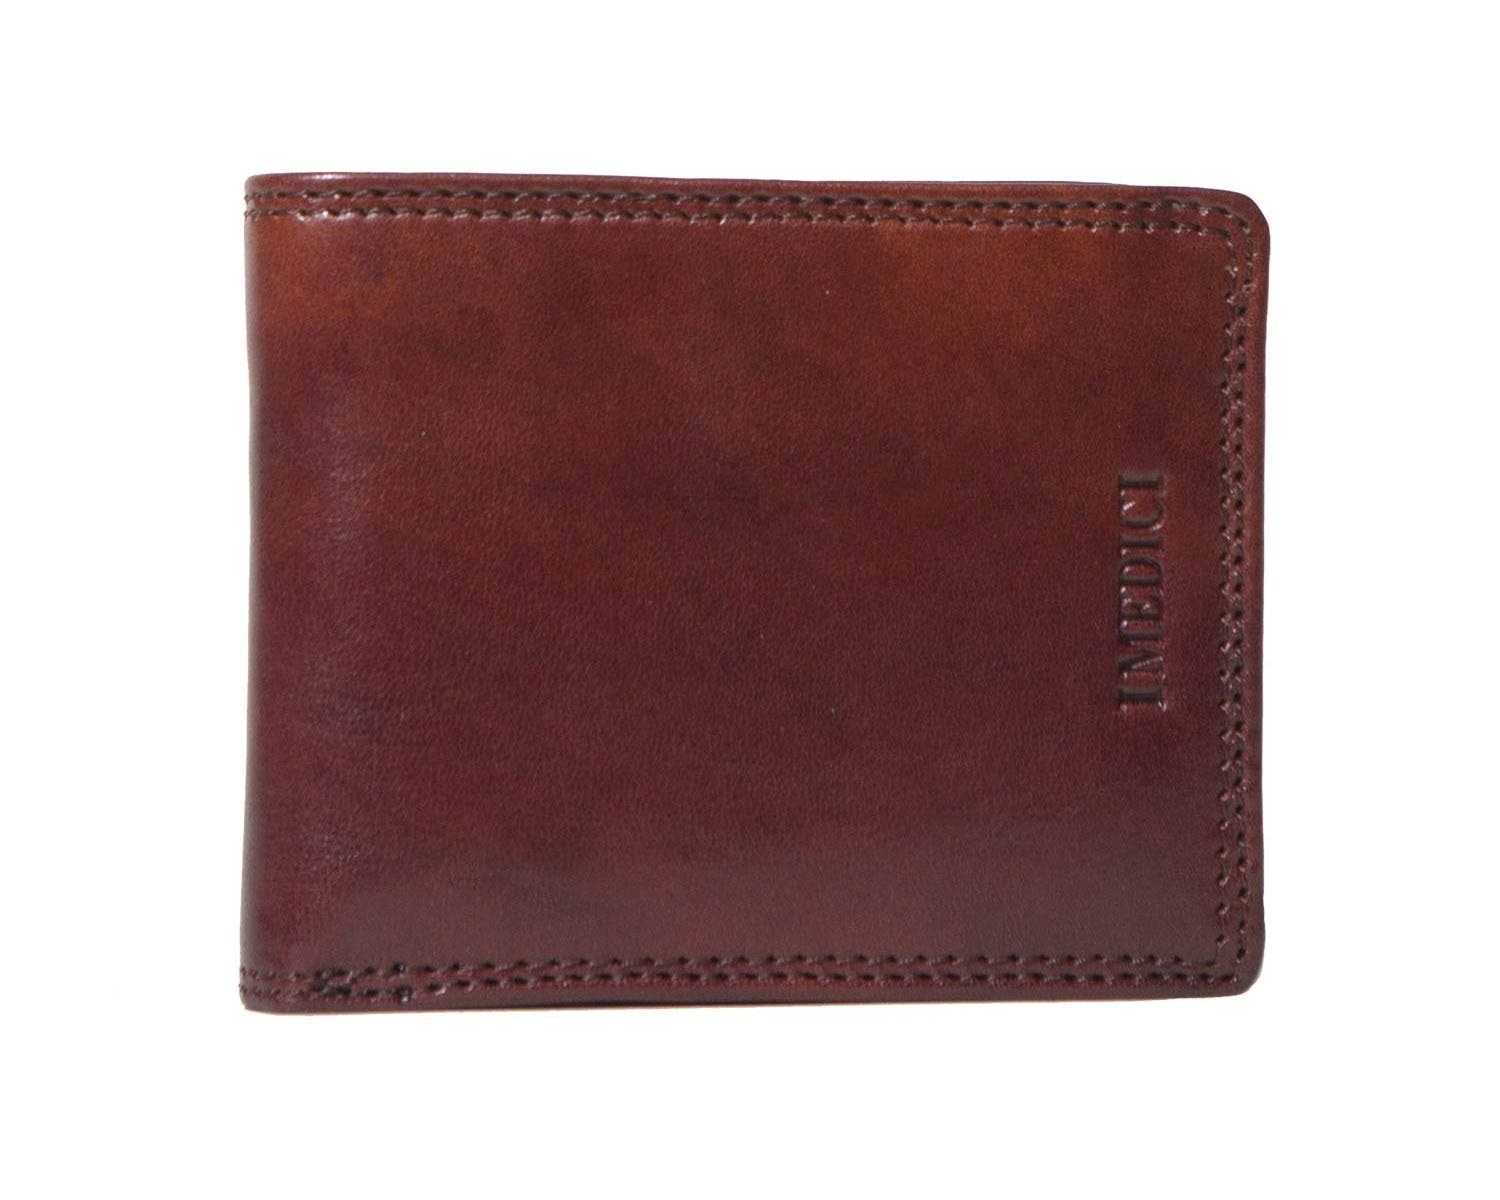 Are Leather Wallets a Long Term Investment?